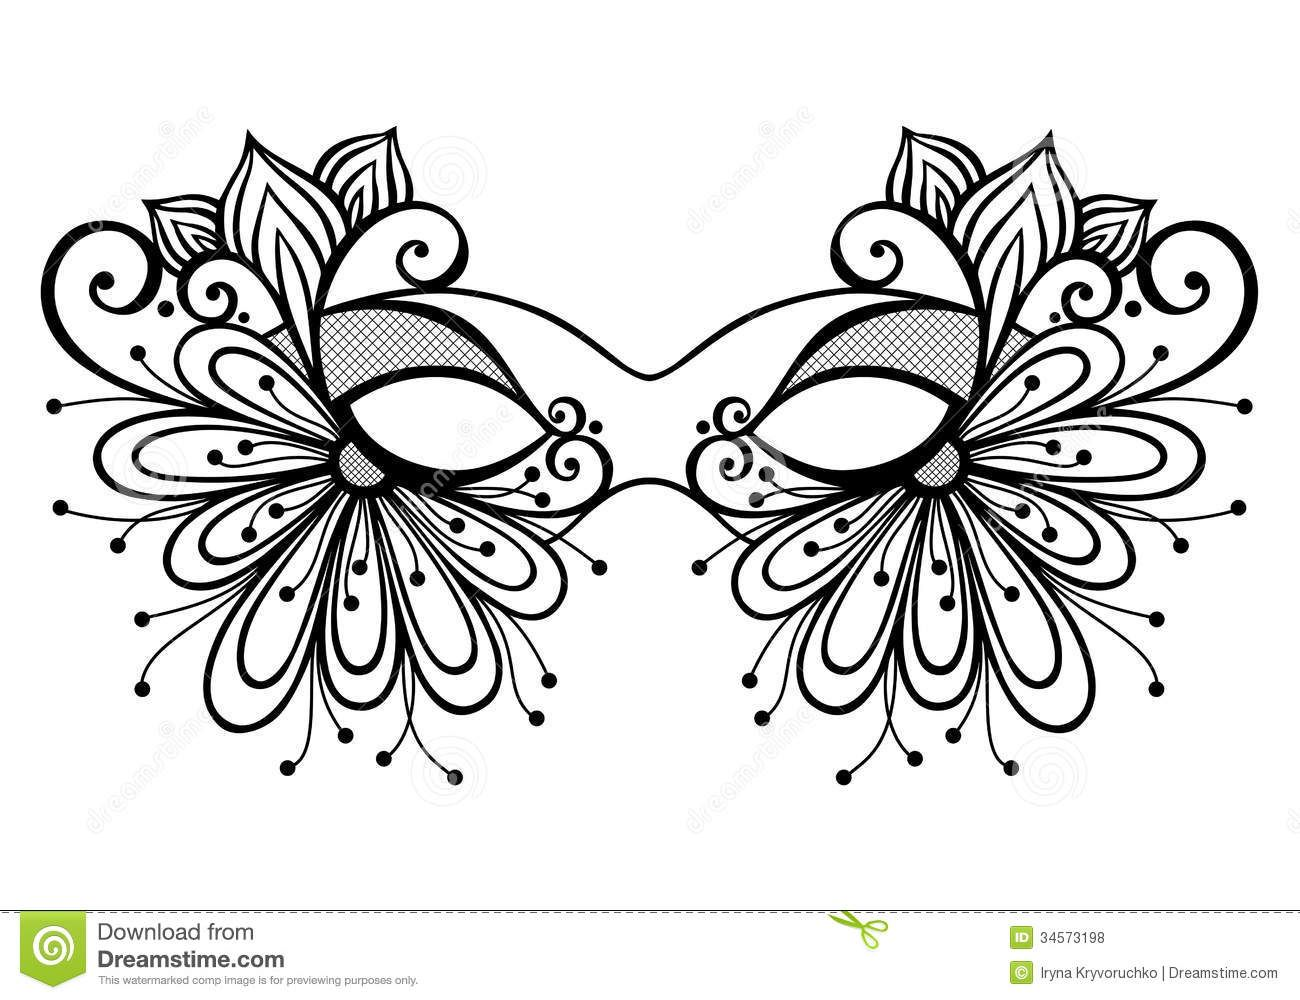 Masquerade Mask - Download From Over 28 Million High Quality Stock ...